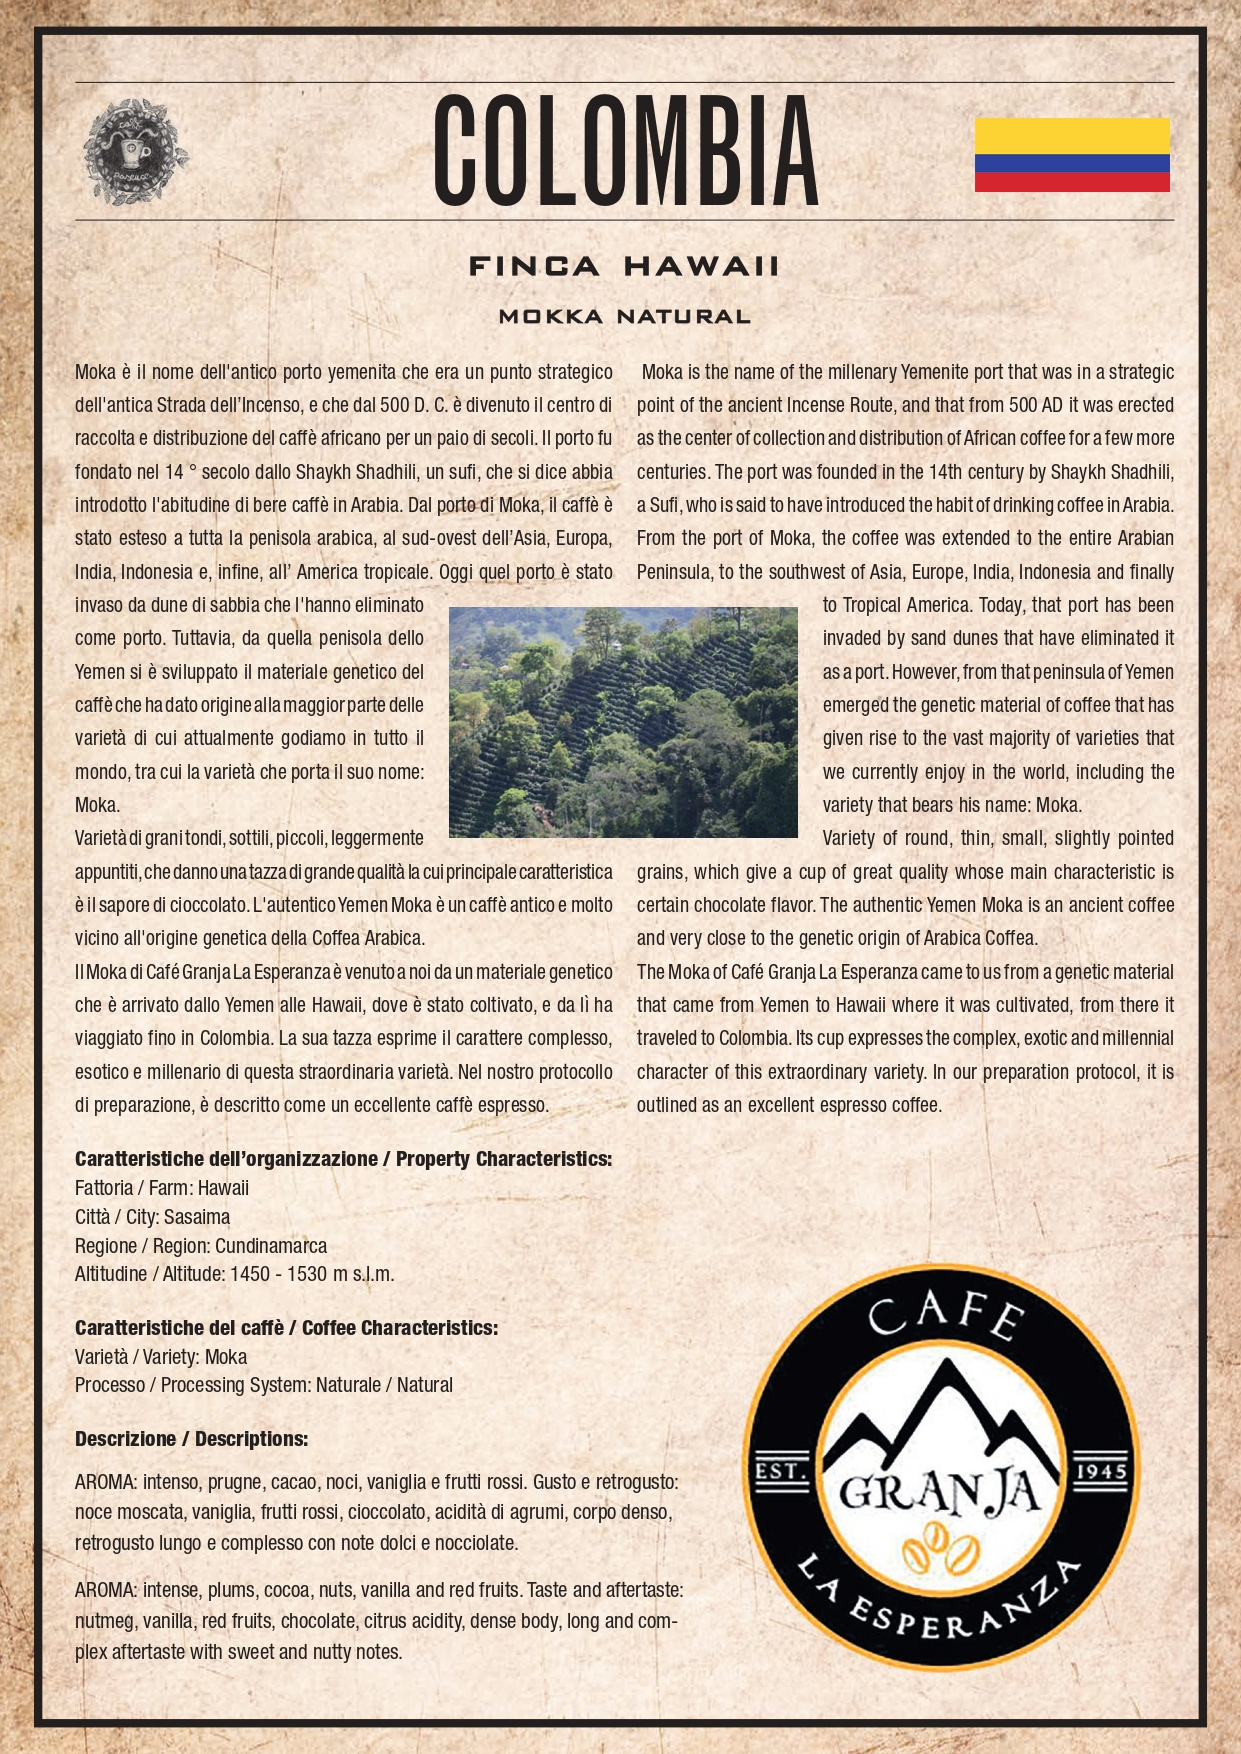 Caffe_Pascucci_Colombia_Hawaii_mokka_natural_Cup_Of_Excellence